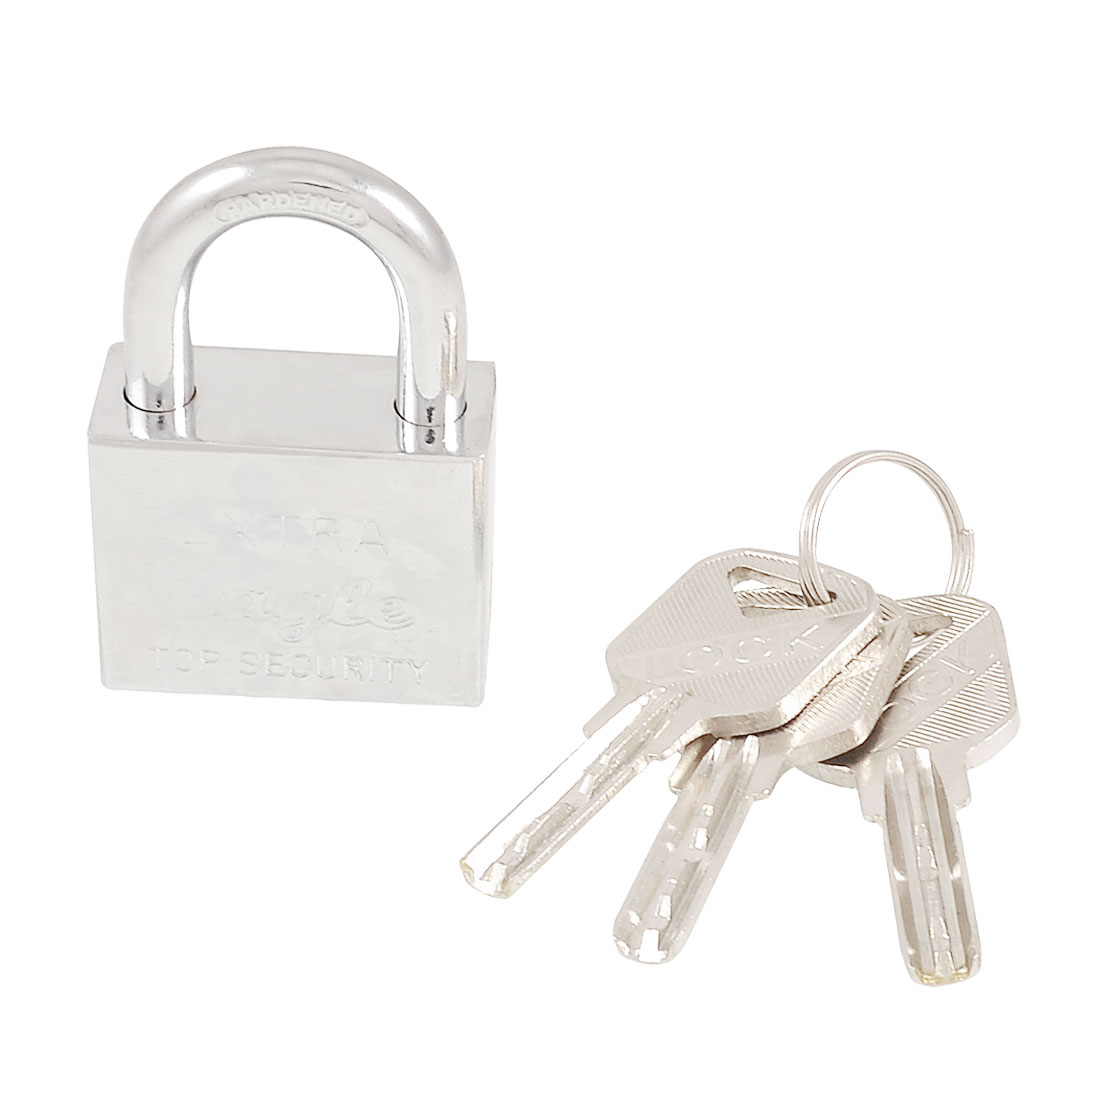 Office Door Gate 40mm Wide Silver Tone Security Lock Padlock + 3 Keys